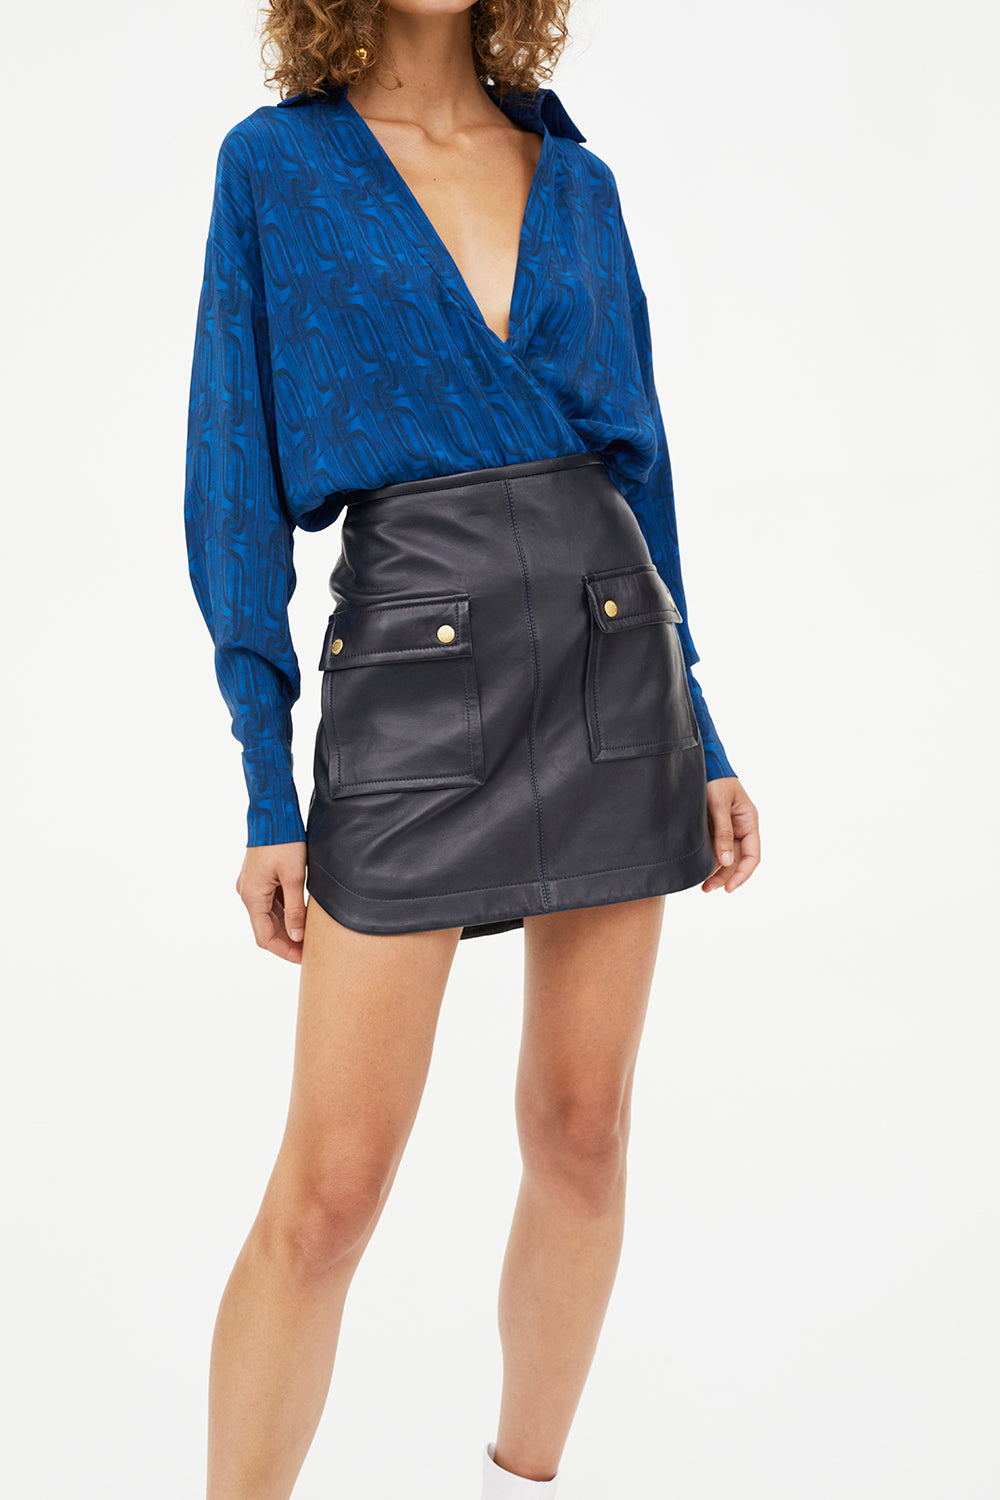 OPEN SEASON LEATHER MINI SKIRT